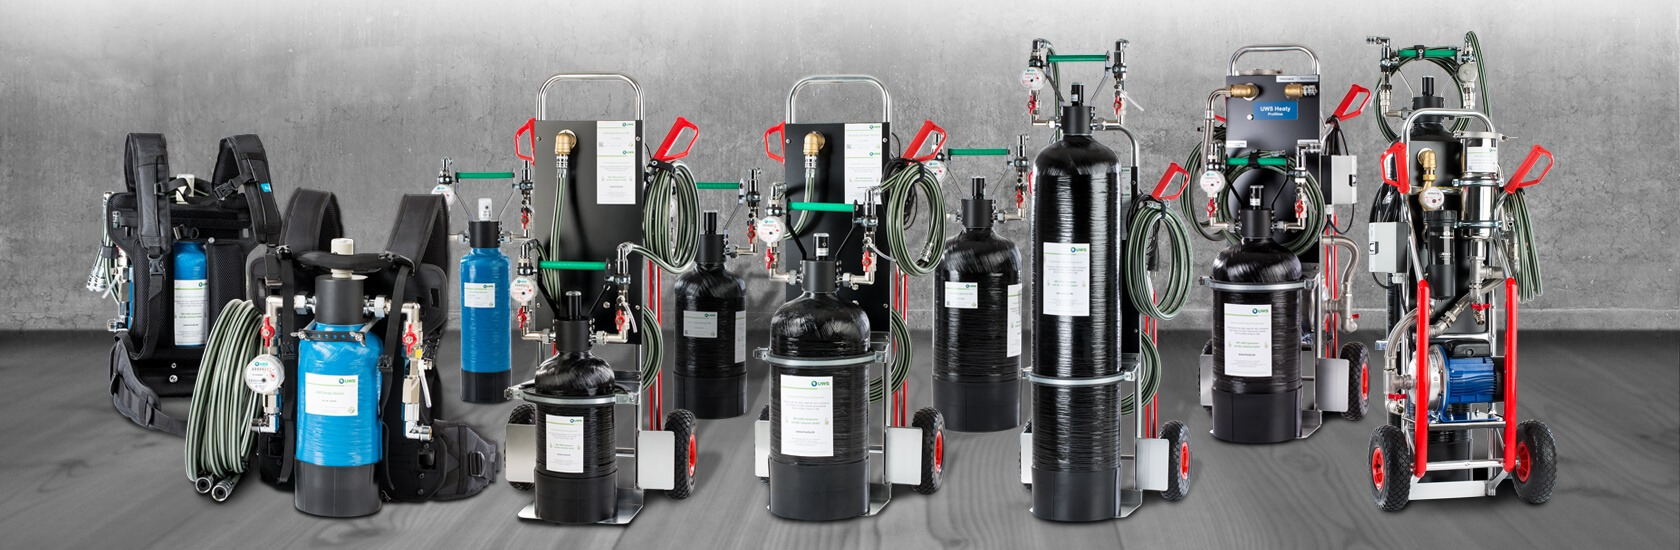 Heating filling systems